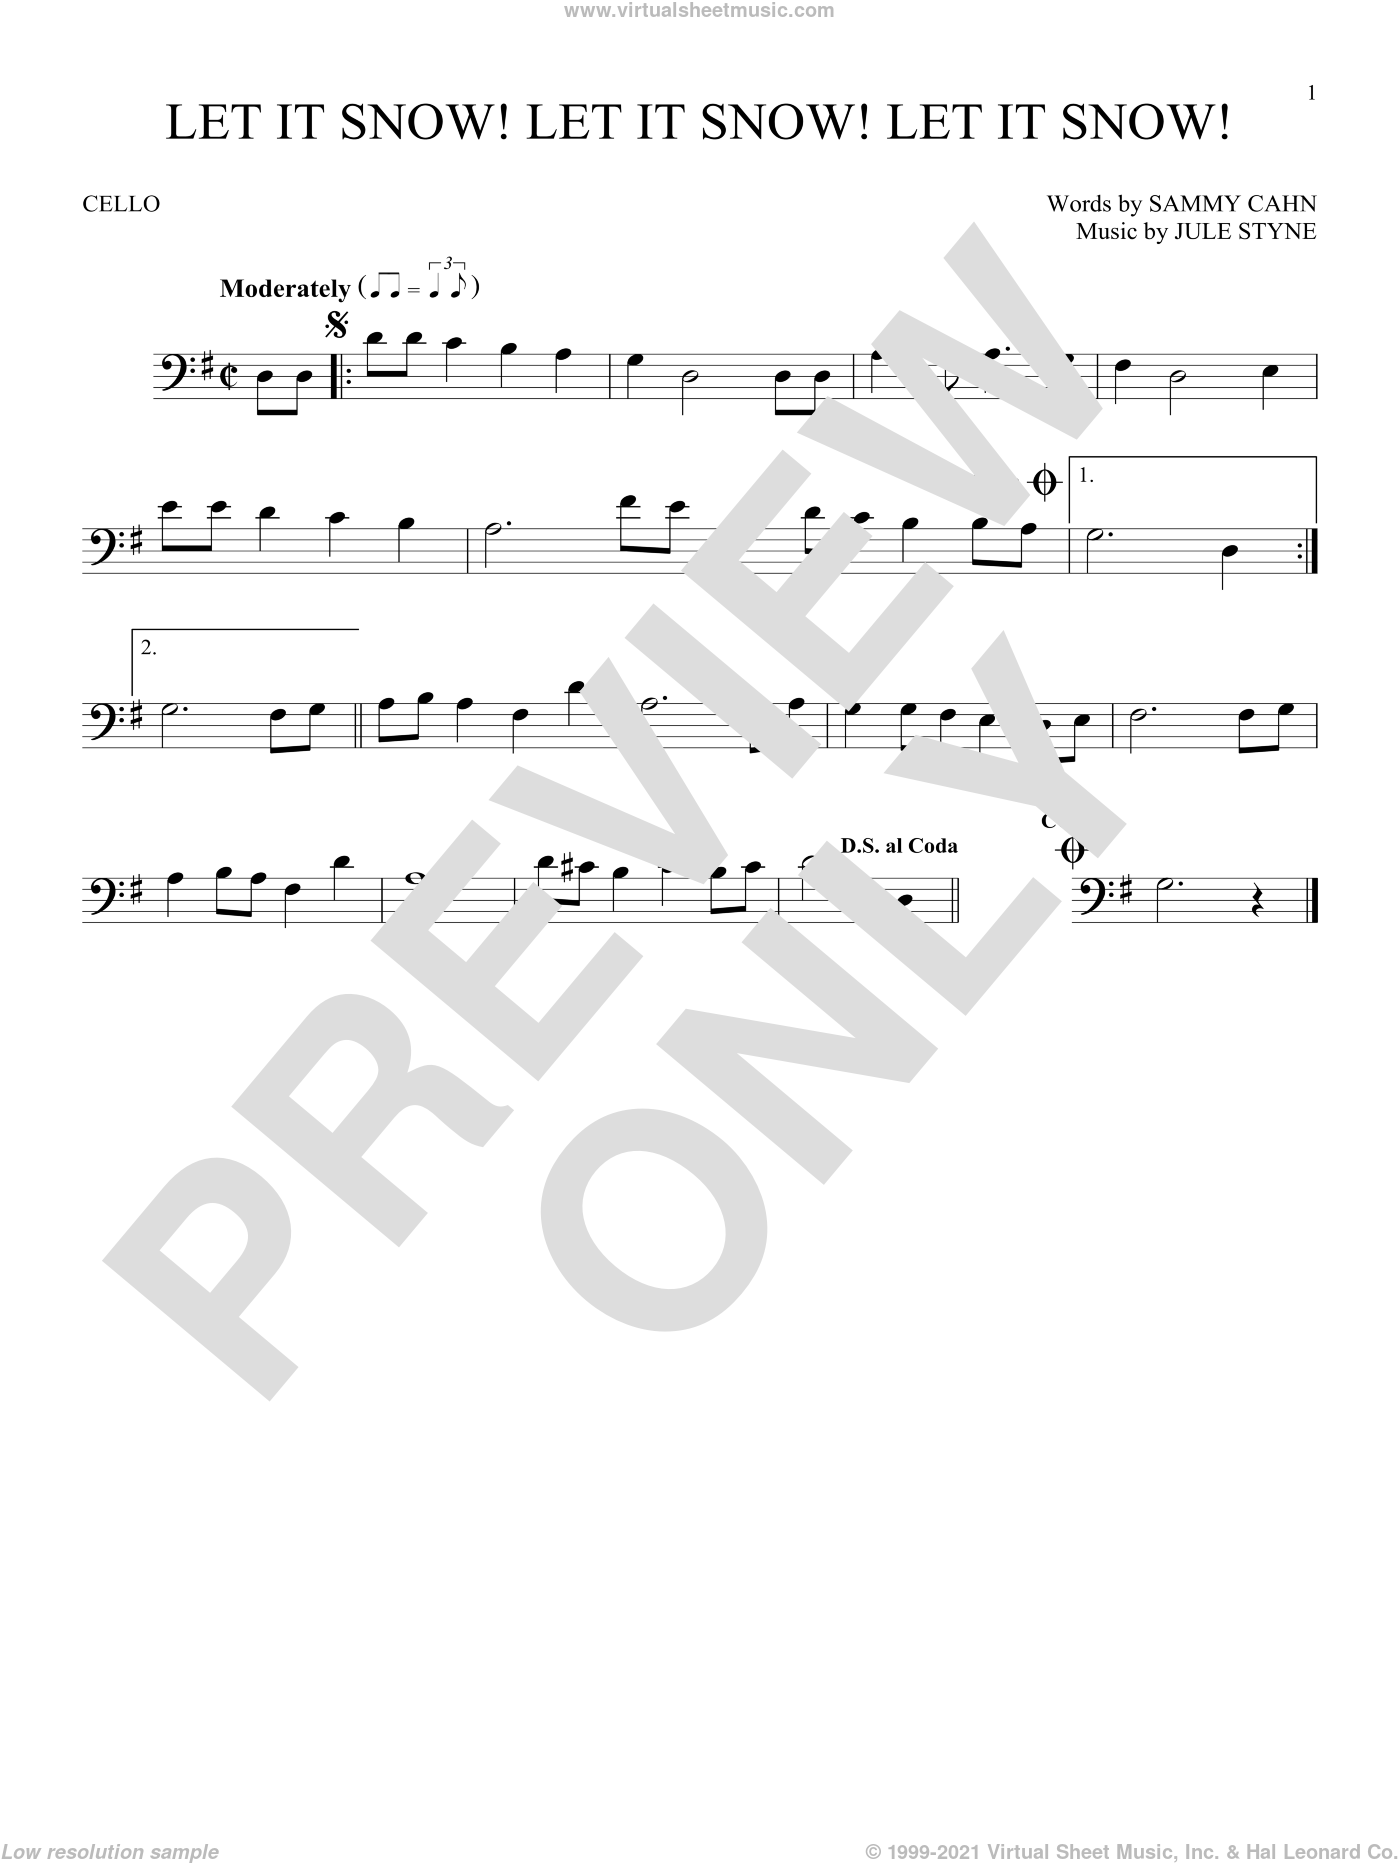 Let It Snow! Let It Snow! Let It Snow! sheet music for cello solo by Sammy Cahn, Jule Styne and Sammy Cahn & Julie Styne, intermediate skill level